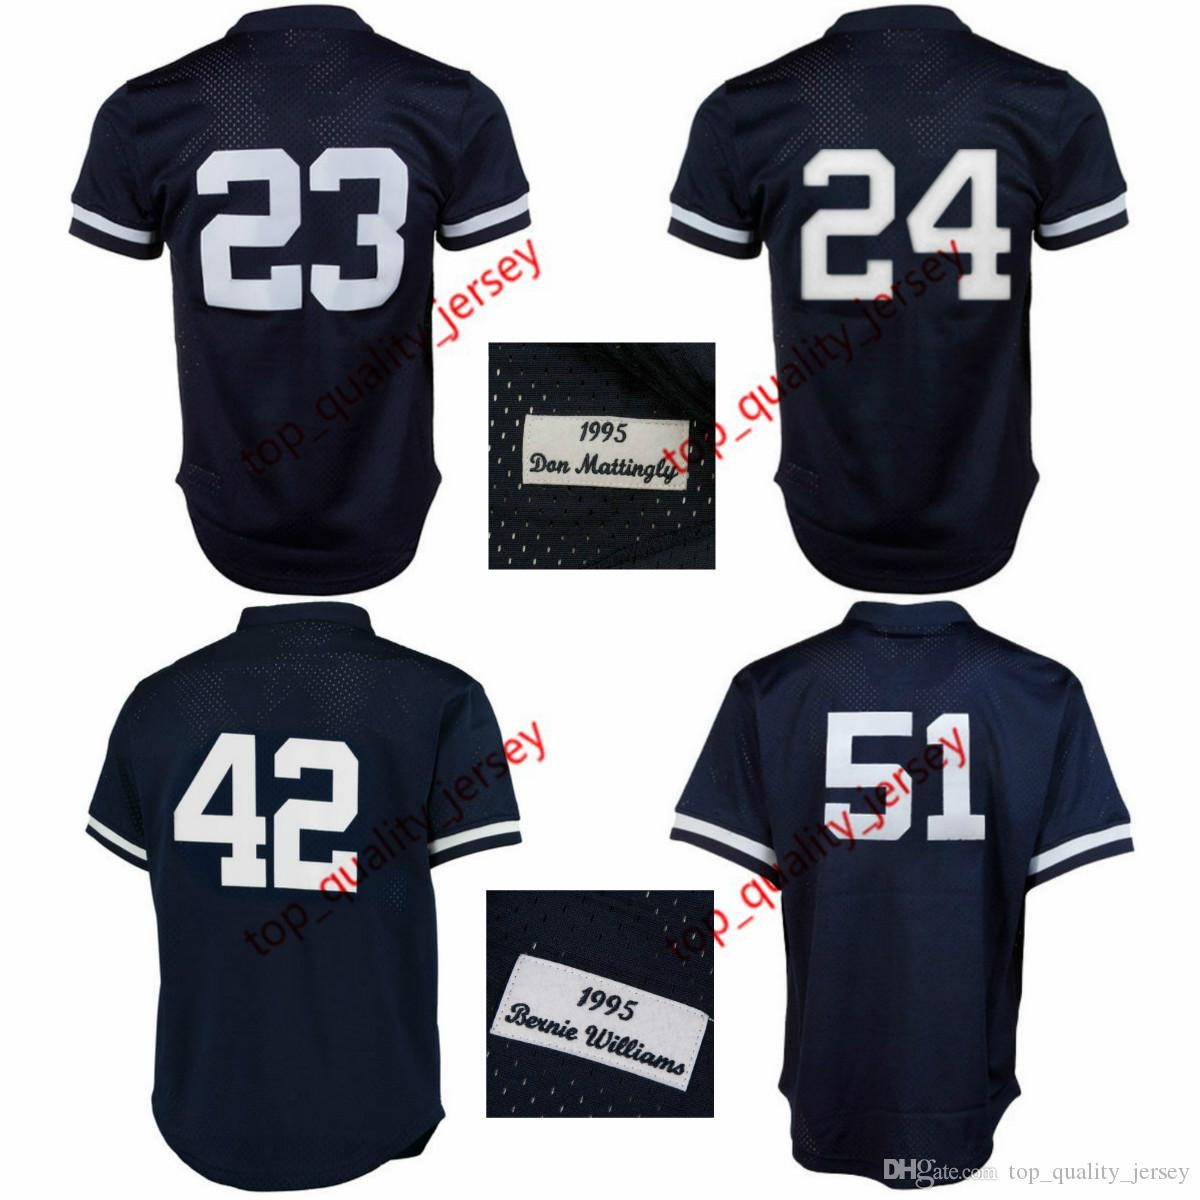 62385c17c ... mens new york don mattingly 1995 cooperstown mesh batting practice  jersey navy tino martinez mariano rivera